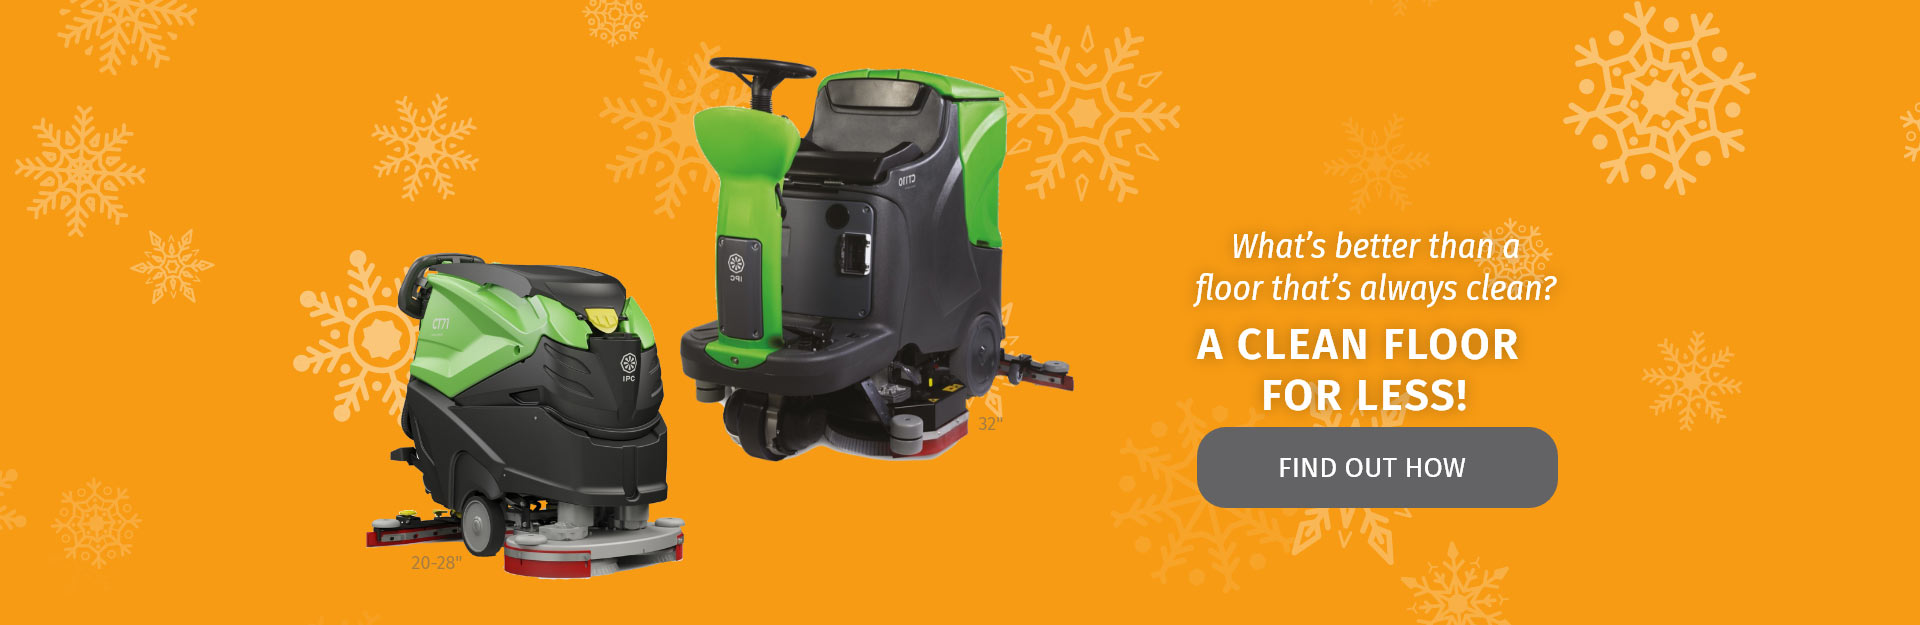 What's better than a floor that's always clean? A Clean floor for less! Find out how!